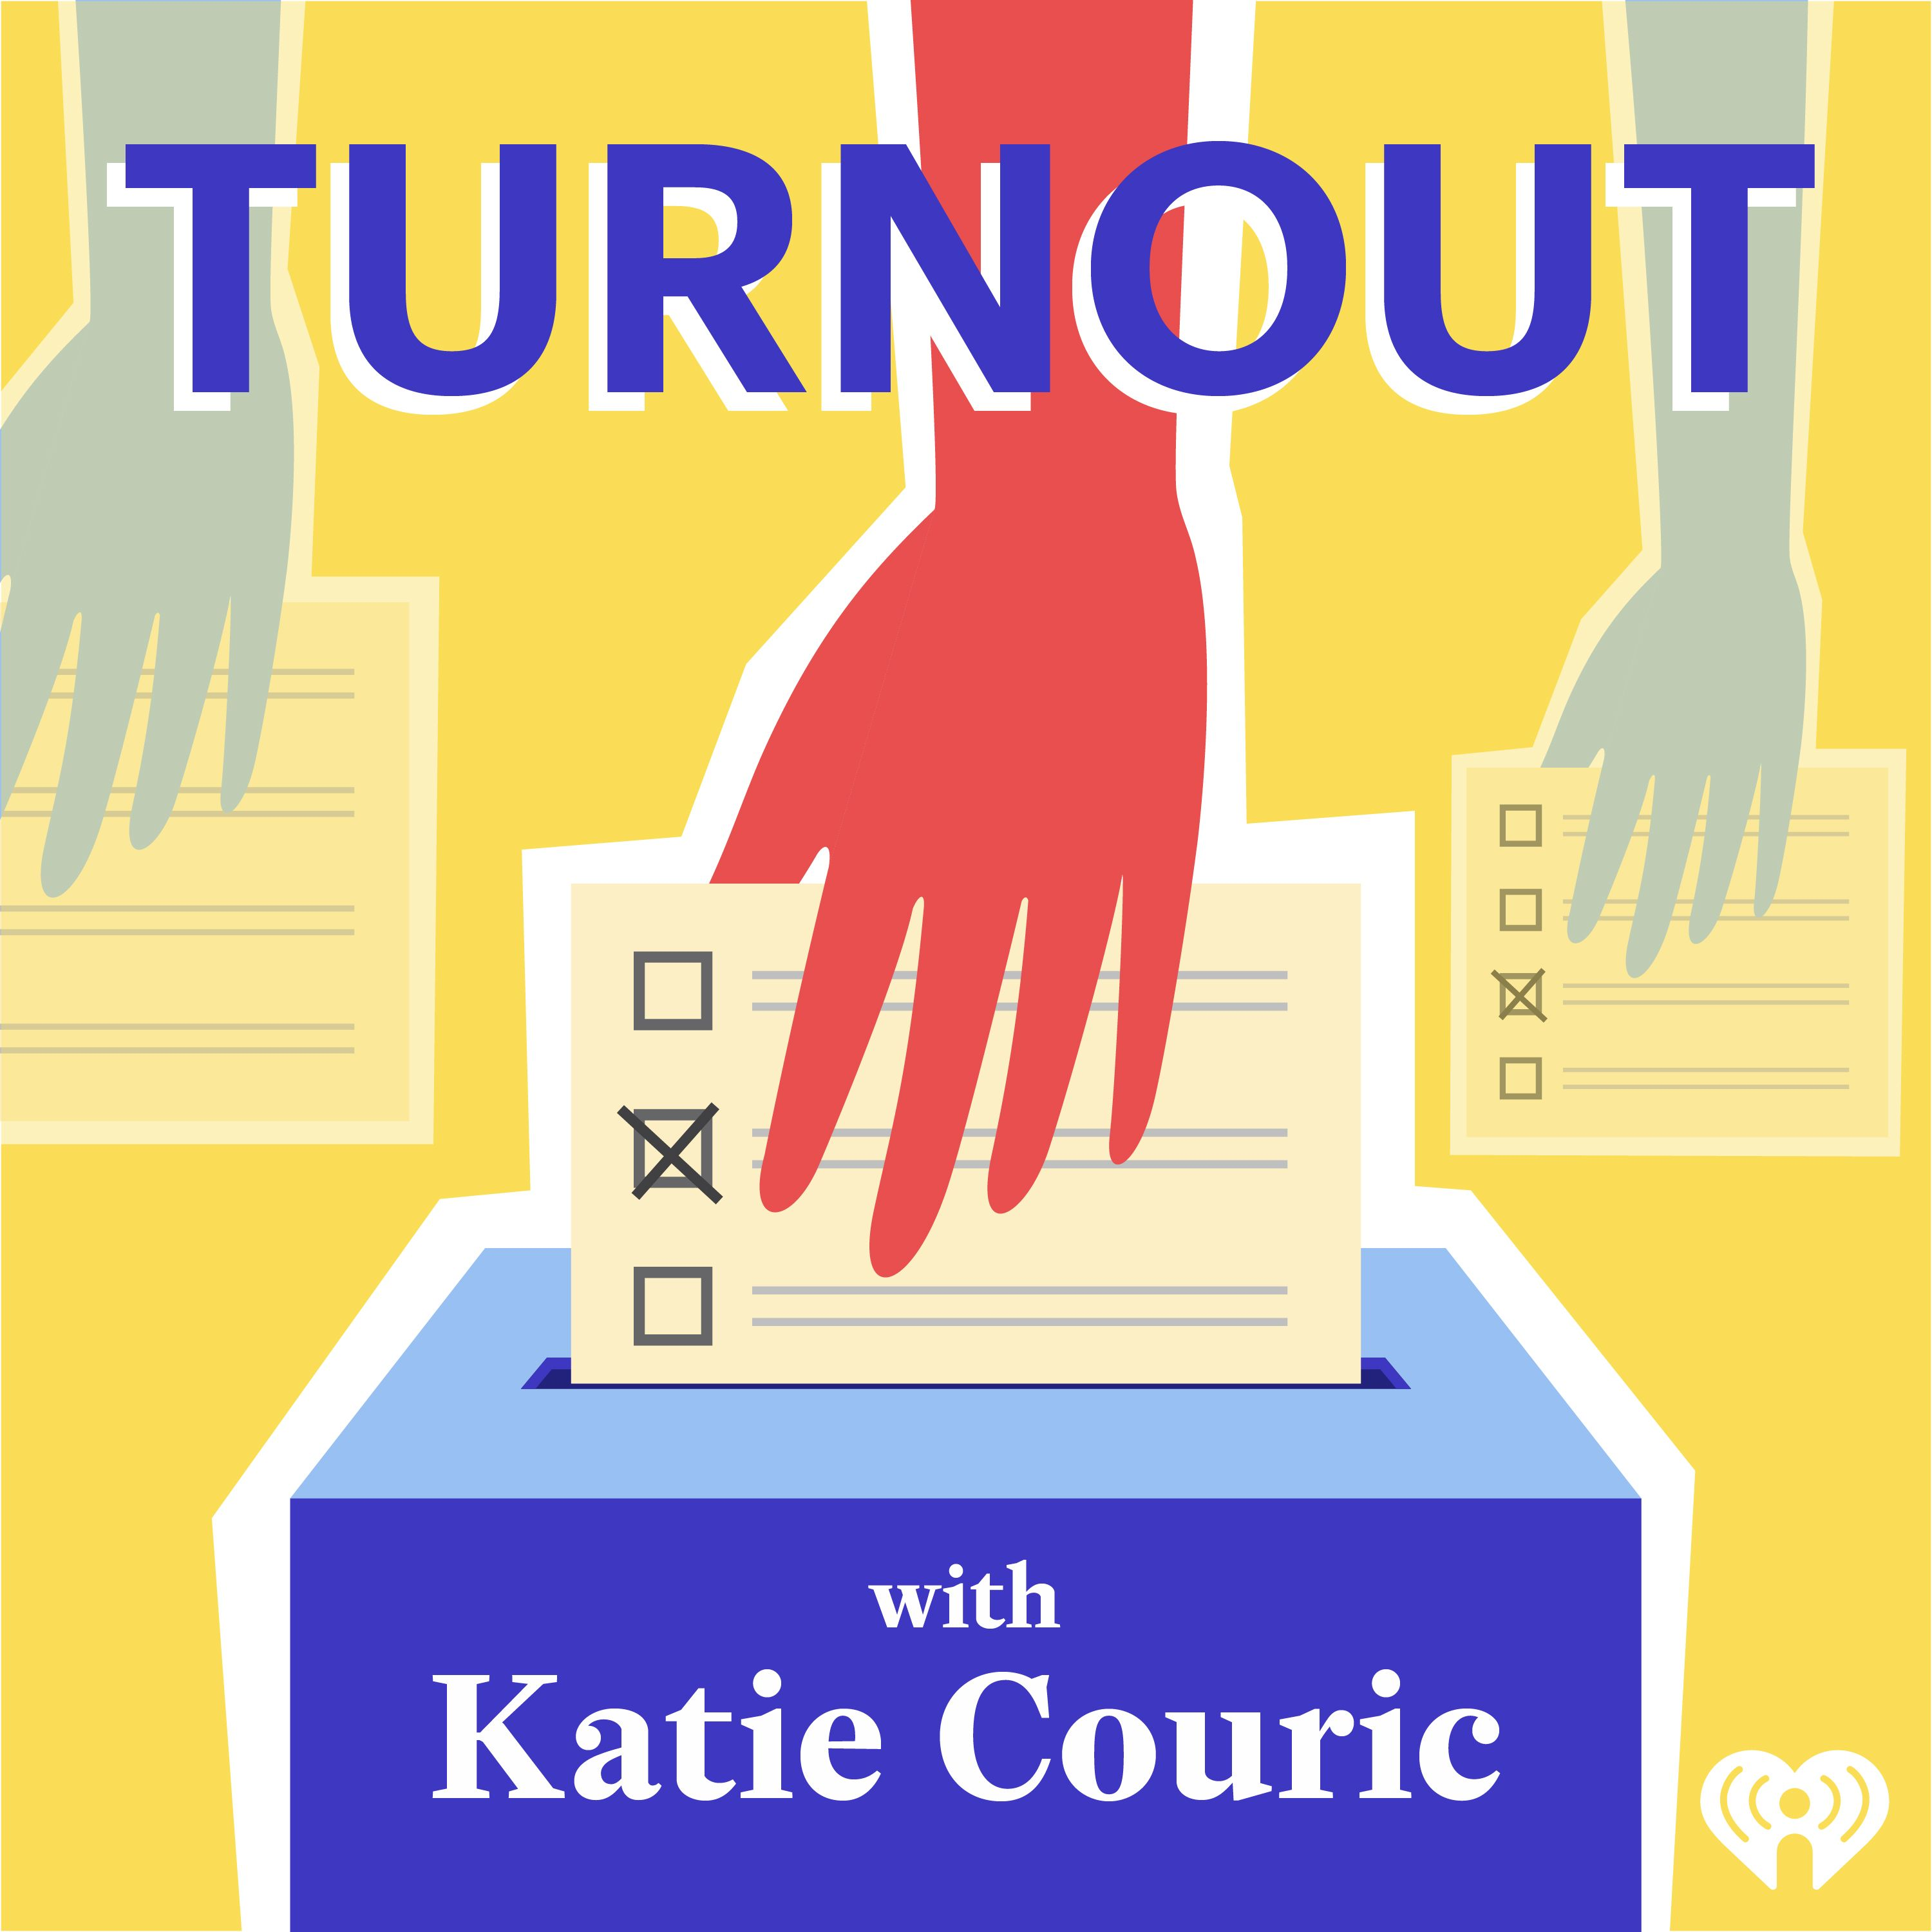 Introducing Turnout with Katie Couric